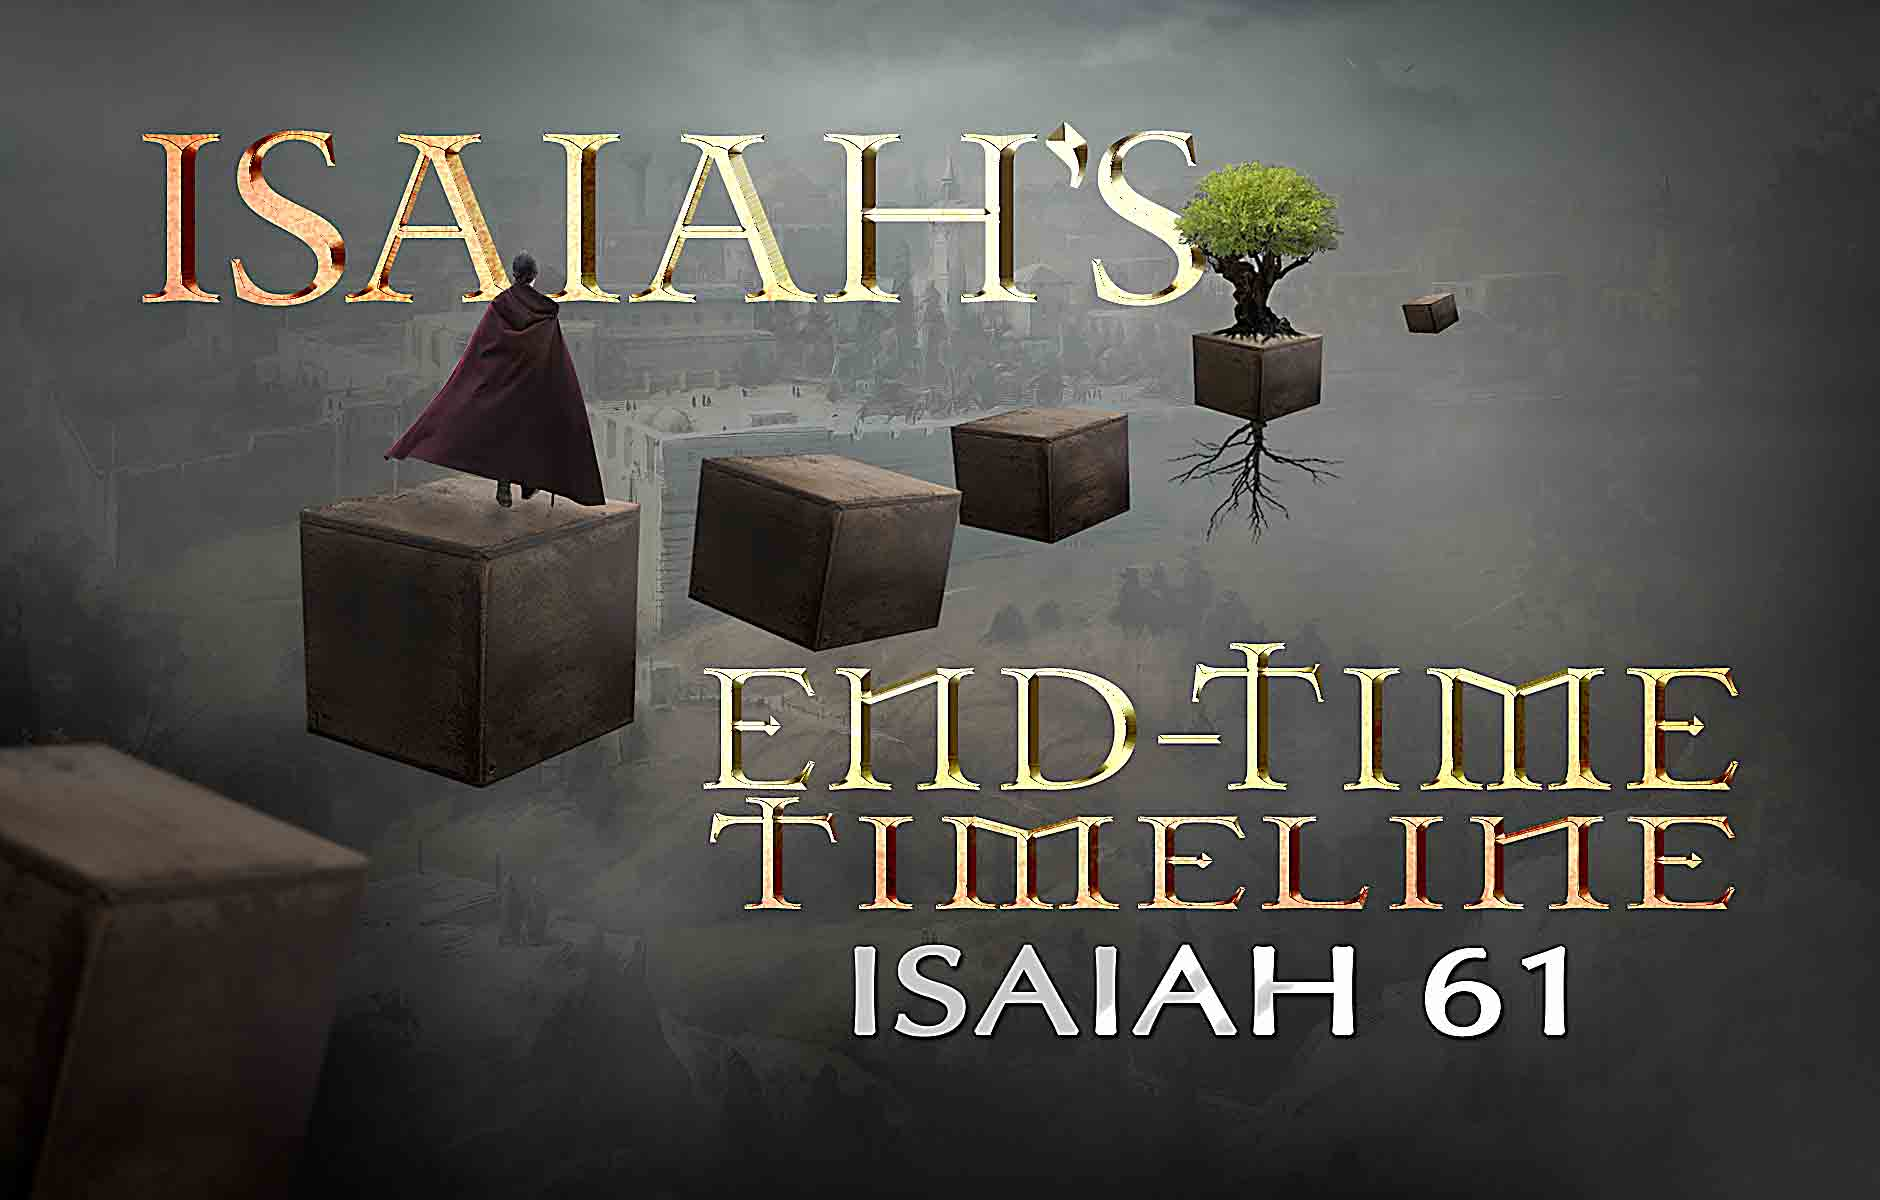 Isaiah's End-time Timeline Chapter 61